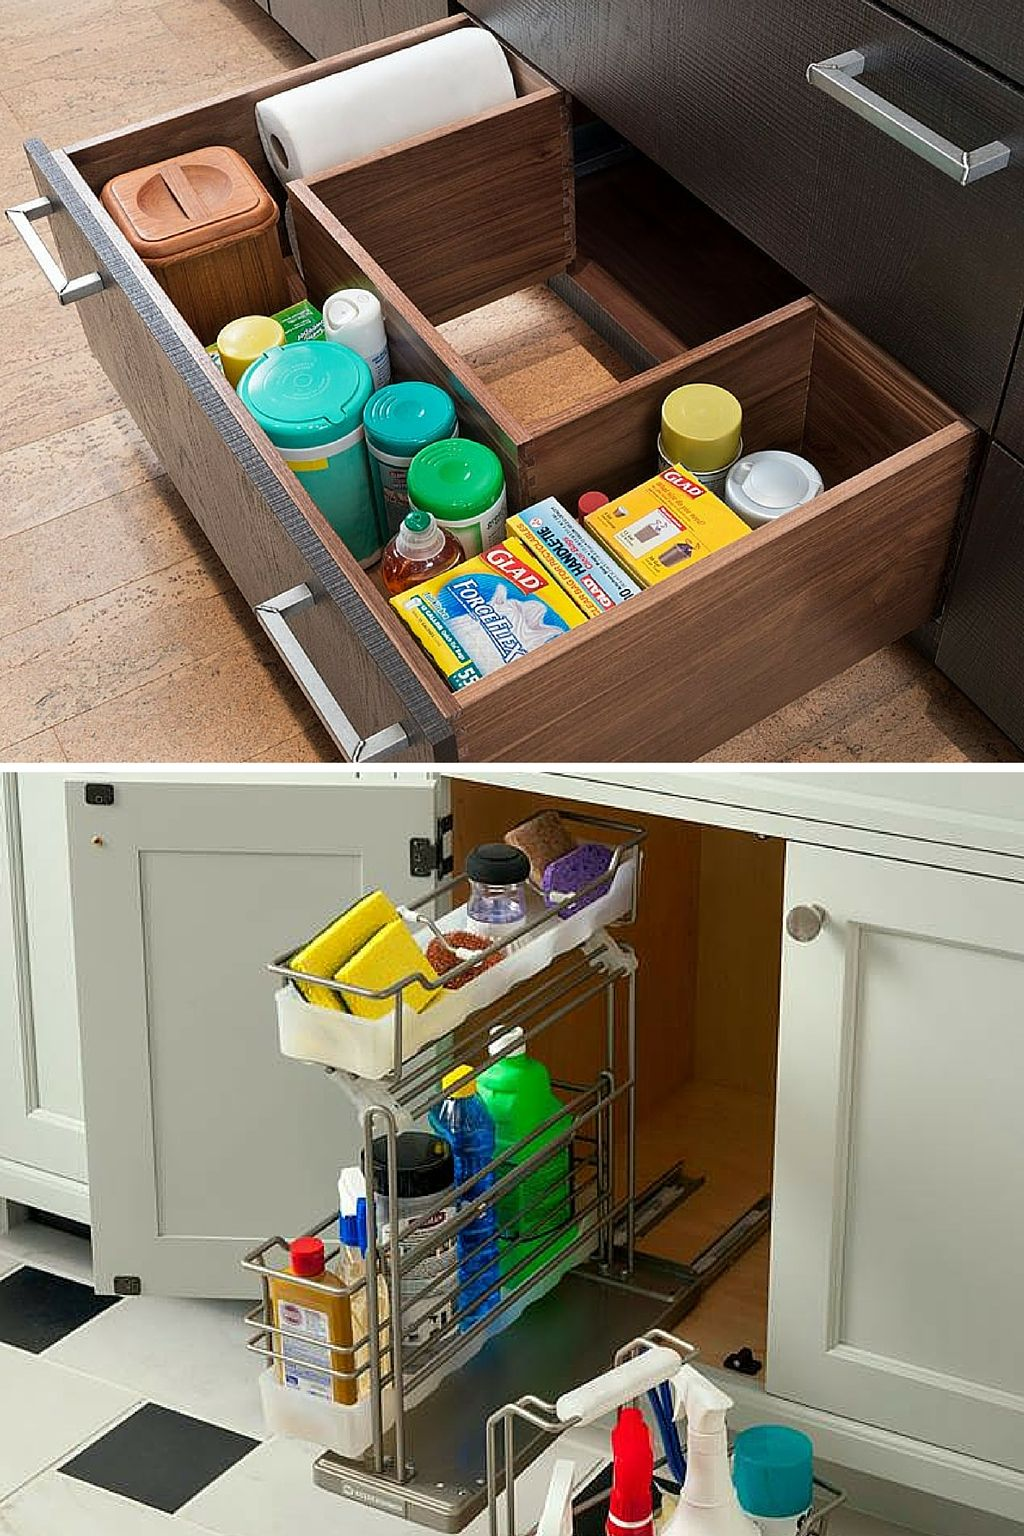 Looking For A Place To Store Your Kitchen Cleaning Supplies Woodmode Customcabinetry Http Www Store Kitchen Appliances Cabinetry Kitchen Cleaning Supplies